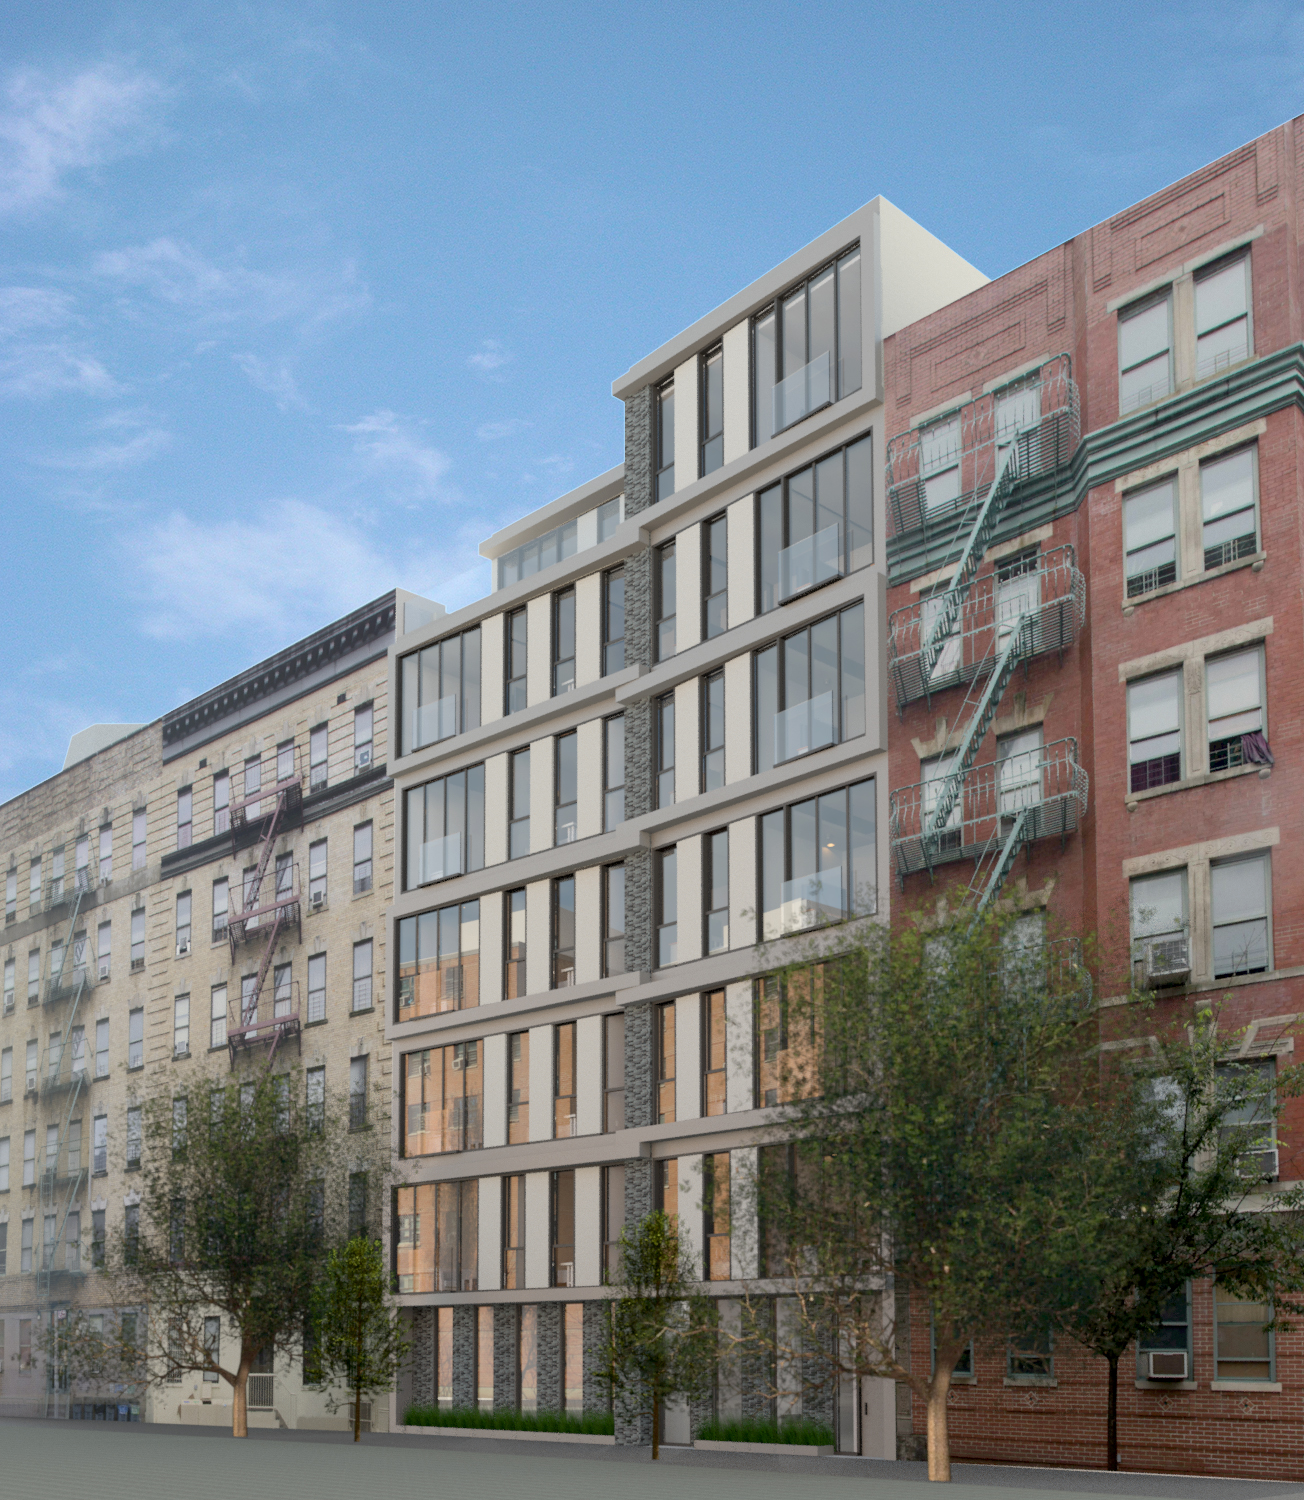 TRA Studio architecture, 336 East 112th Street, Harlem, Upper East Side, New York, NY, Design, Modern, 251 East 61st Street, Construction, Renovation, Rental, Condo, Residential, Facade, Rendering